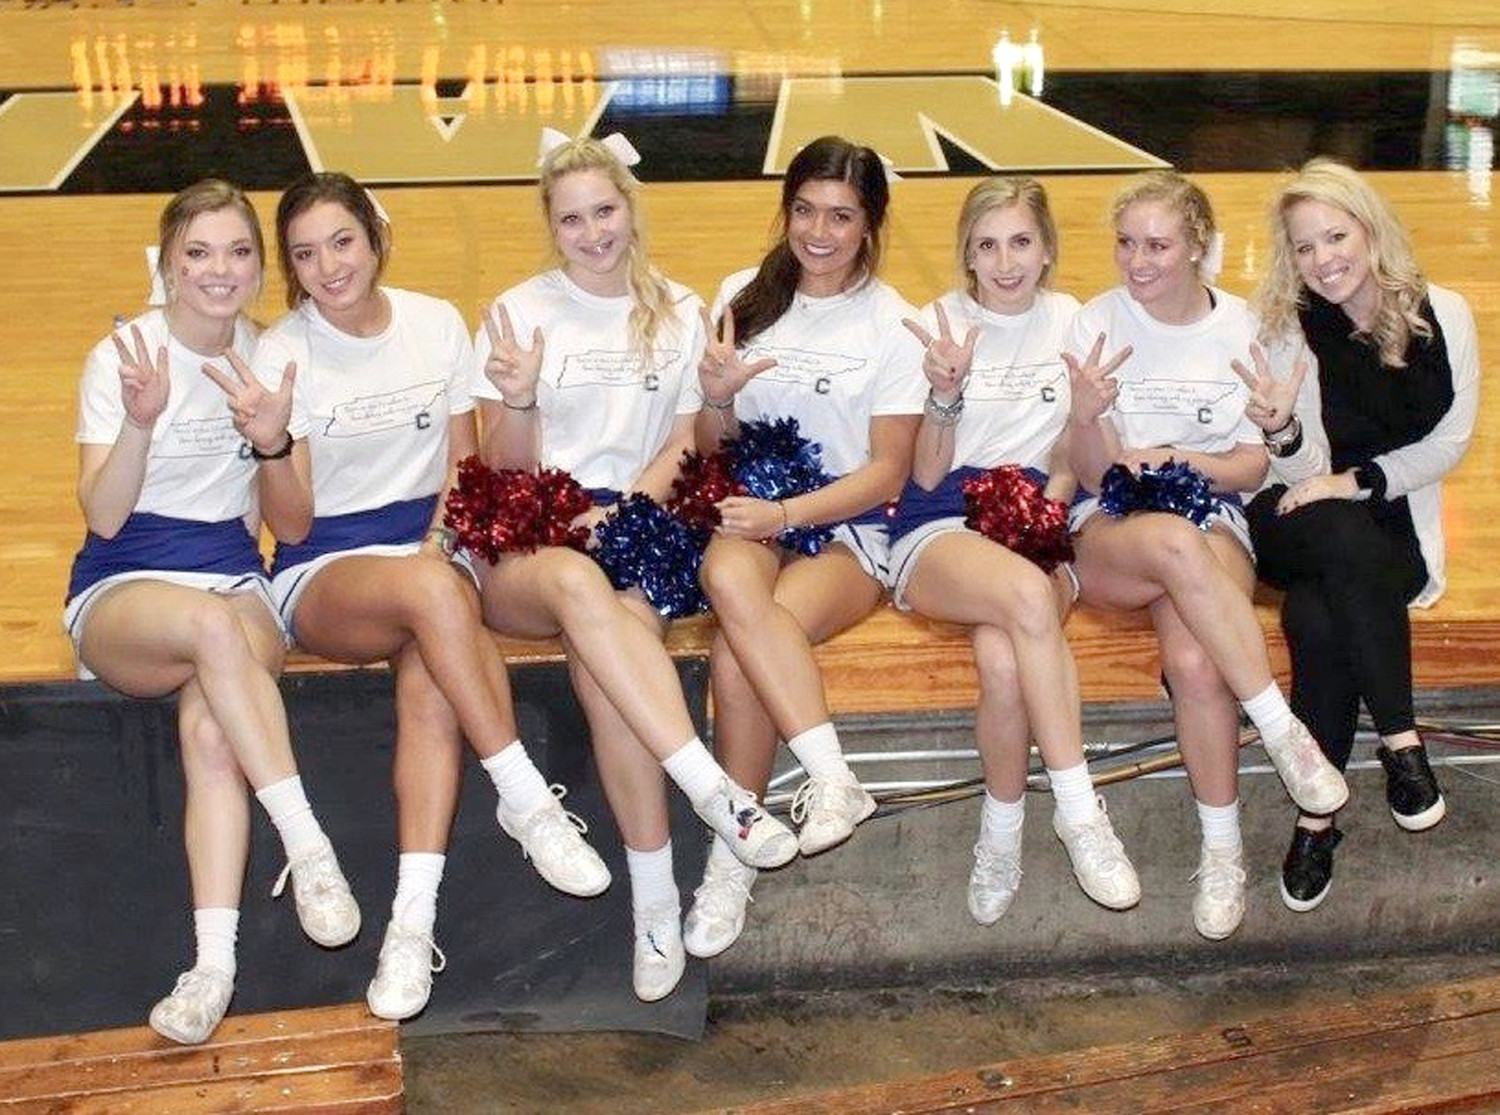 THE SENIORS on Cleveland High School's varsity cheerleading squad have had busy year. From left are Anna Kate Sims, Cameron Davis, Katelyn Hanshew, Olivia Calfee, Hannah Graig and Lindsey Gregg.